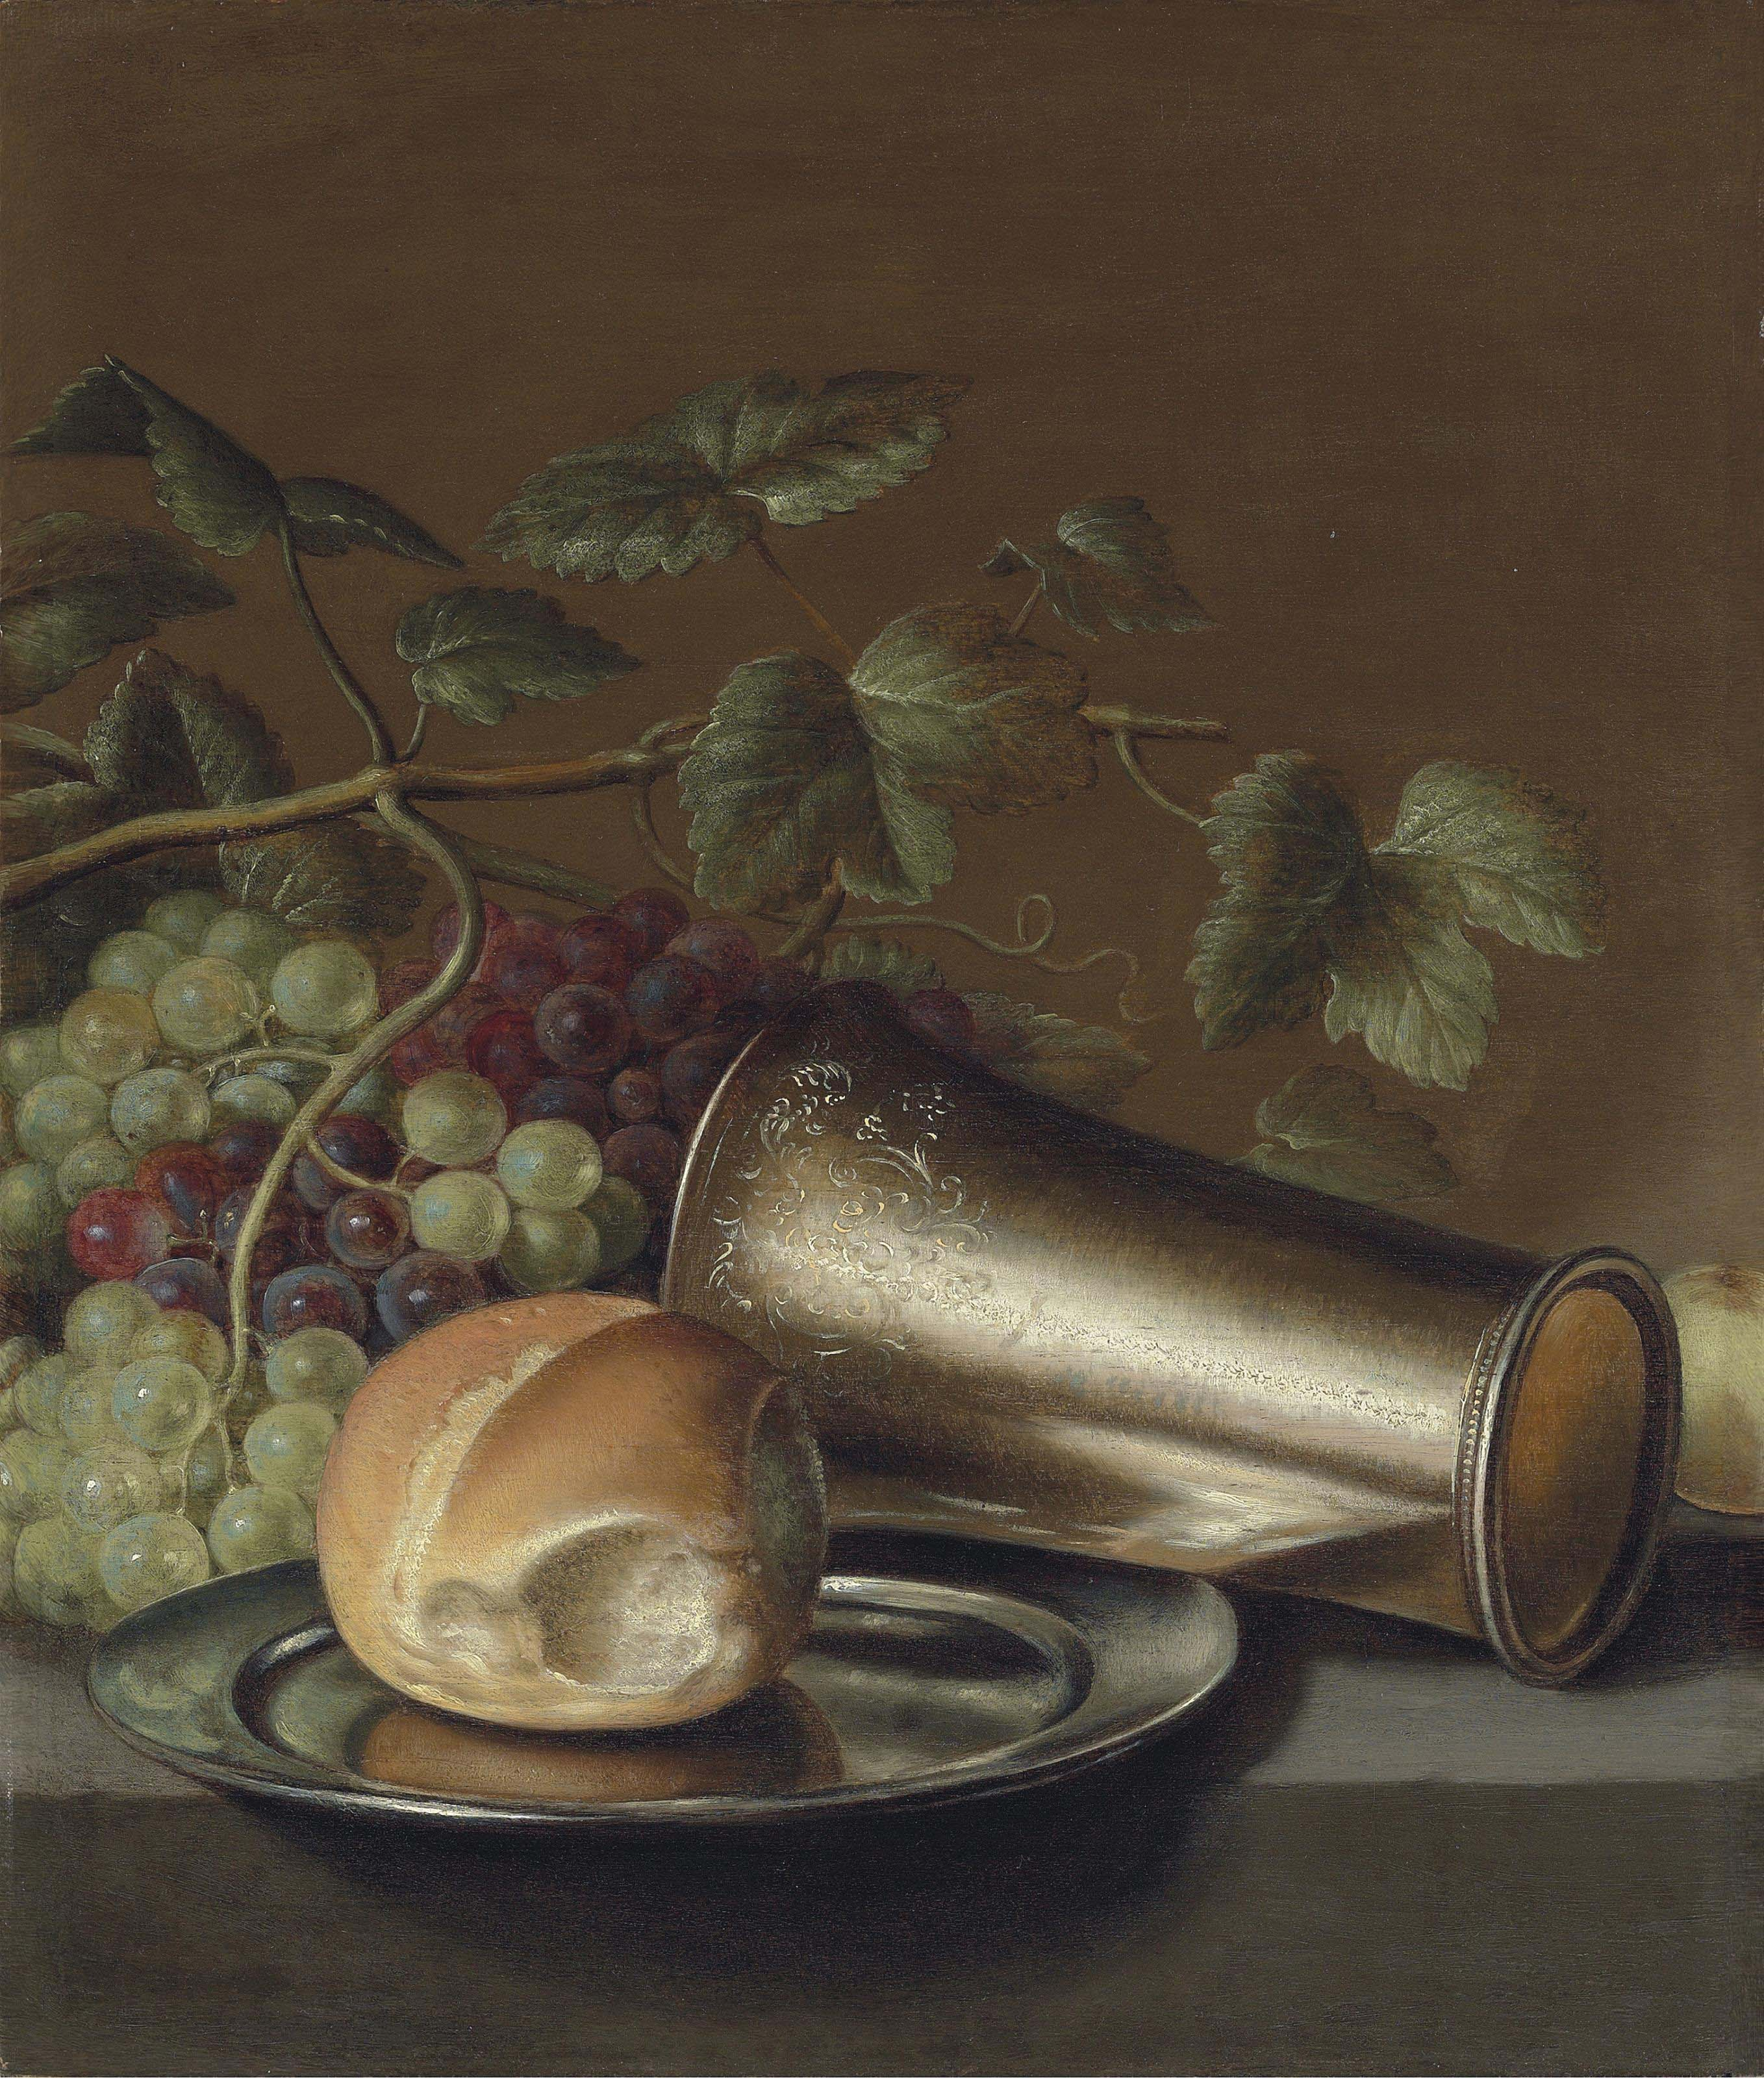 Bread on a pewter platter, an engraved silver cup, with grapes and a plum on a stone ledge